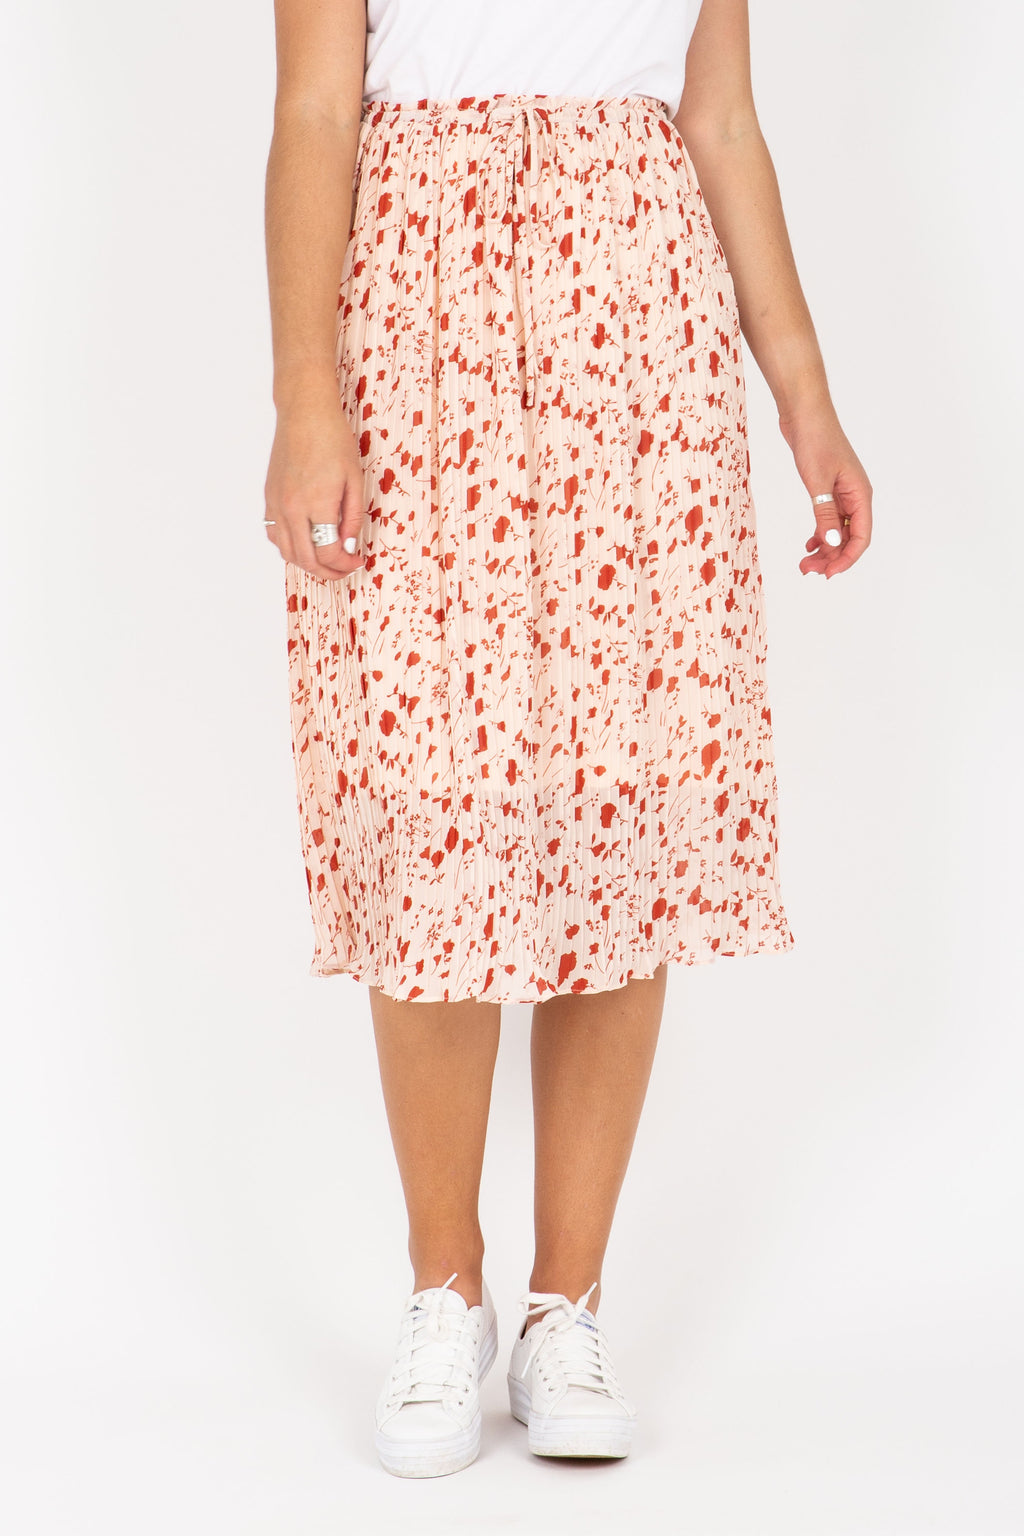 The Charli Patterned Pleated Skirt in Blush, studio shoot; front view